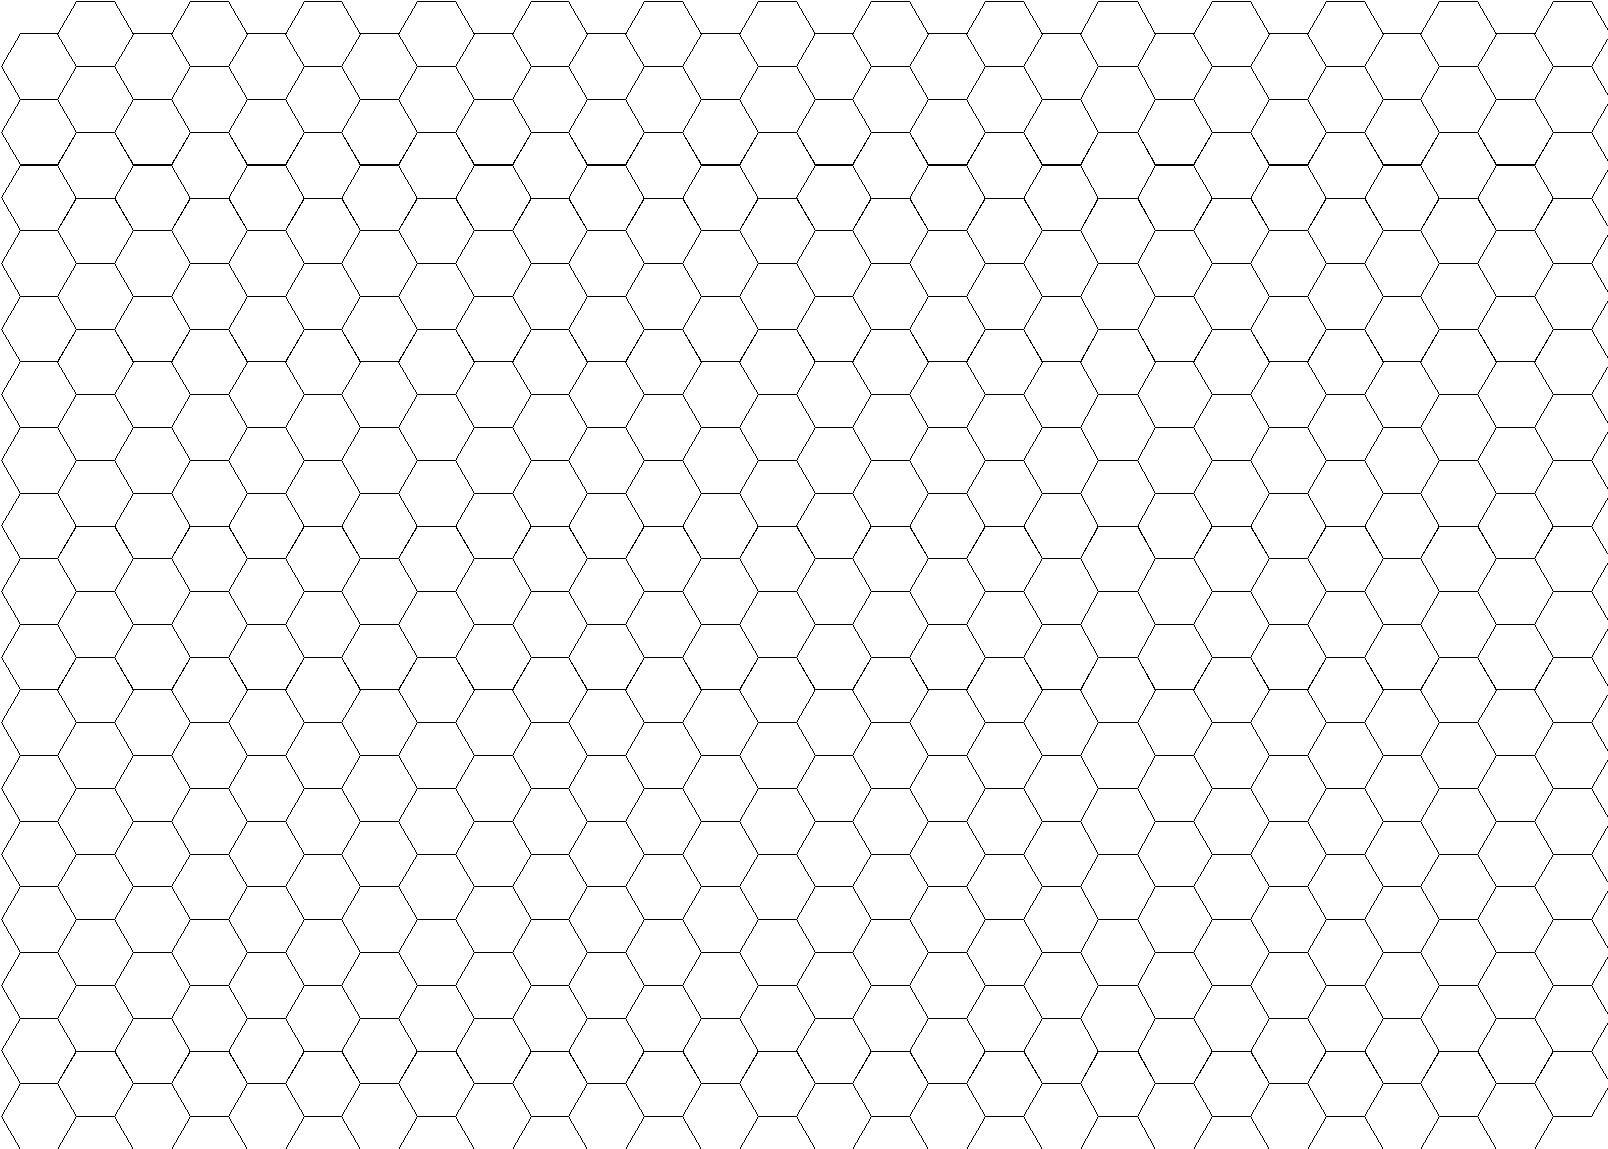 picture relating to Hex Paper Printable called Printable Hex Paper space